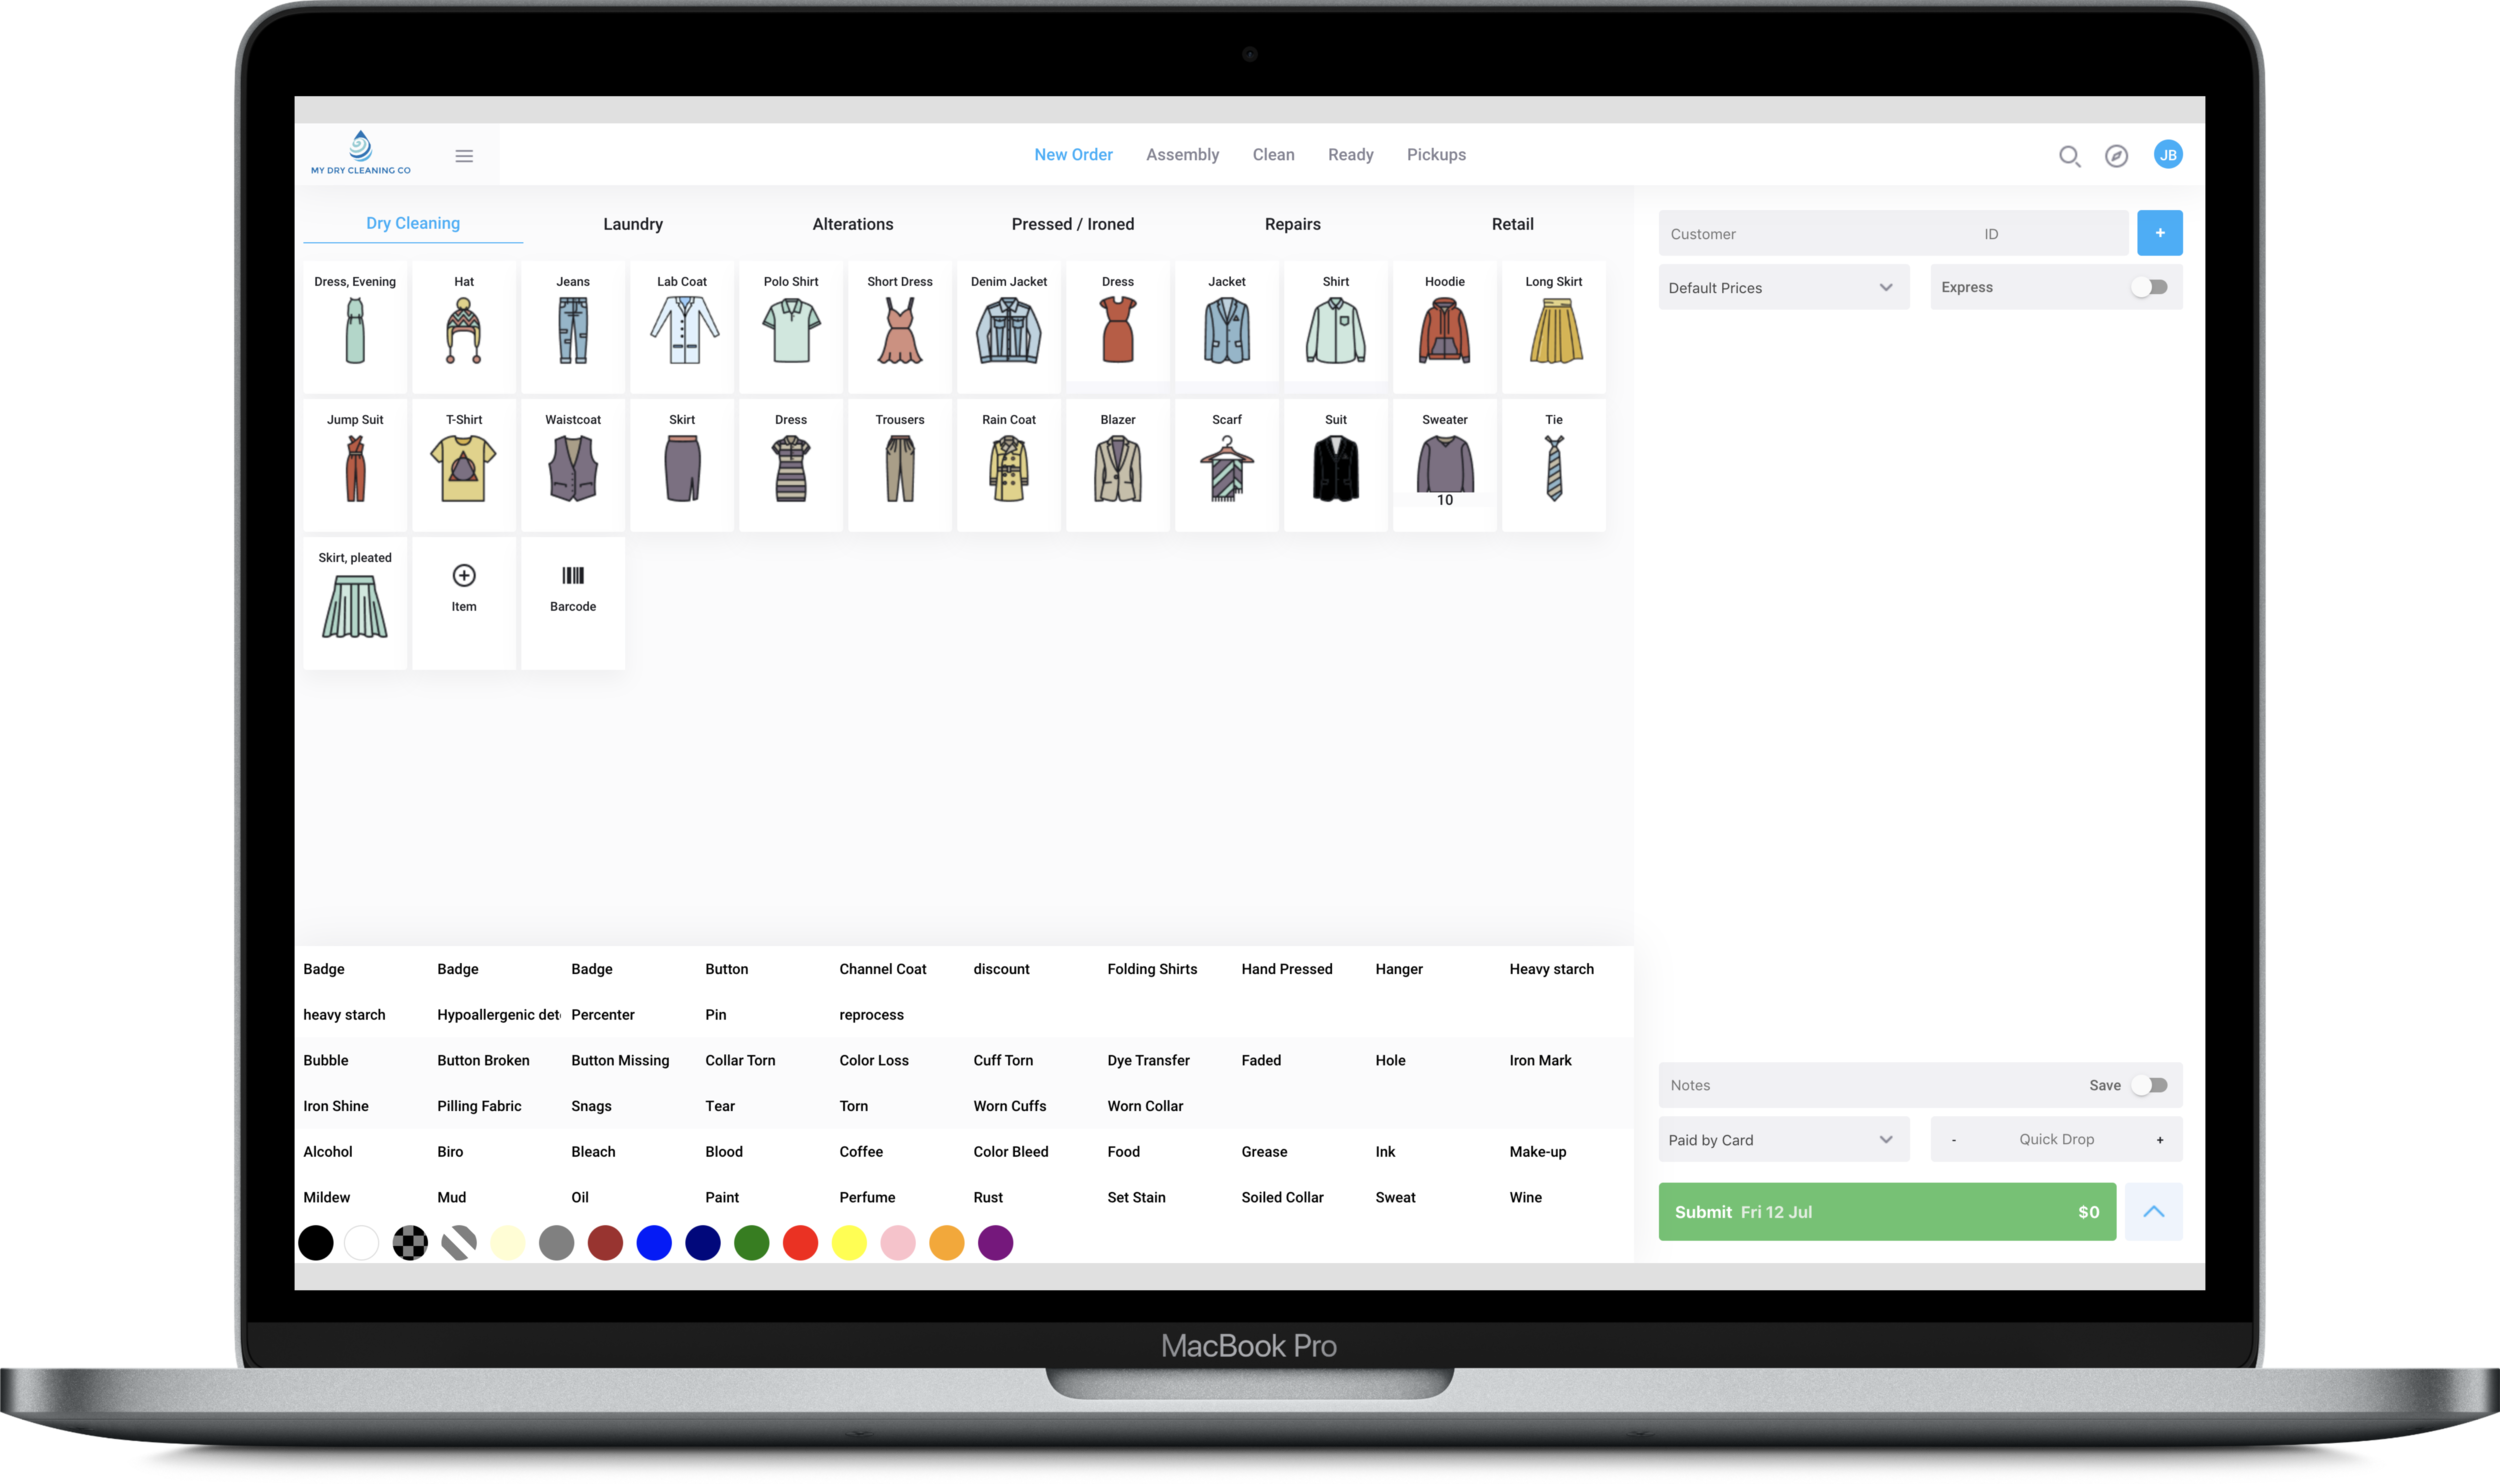 THE CLEANCLOUD EXPERIENCE. - The client drops their items; we process them through our system adding any notes and/or photos as needed. They can pay at drop-off or on collection. The client receives a notification via their chosen method that their items are ready for collection. They can pay by cash or card.